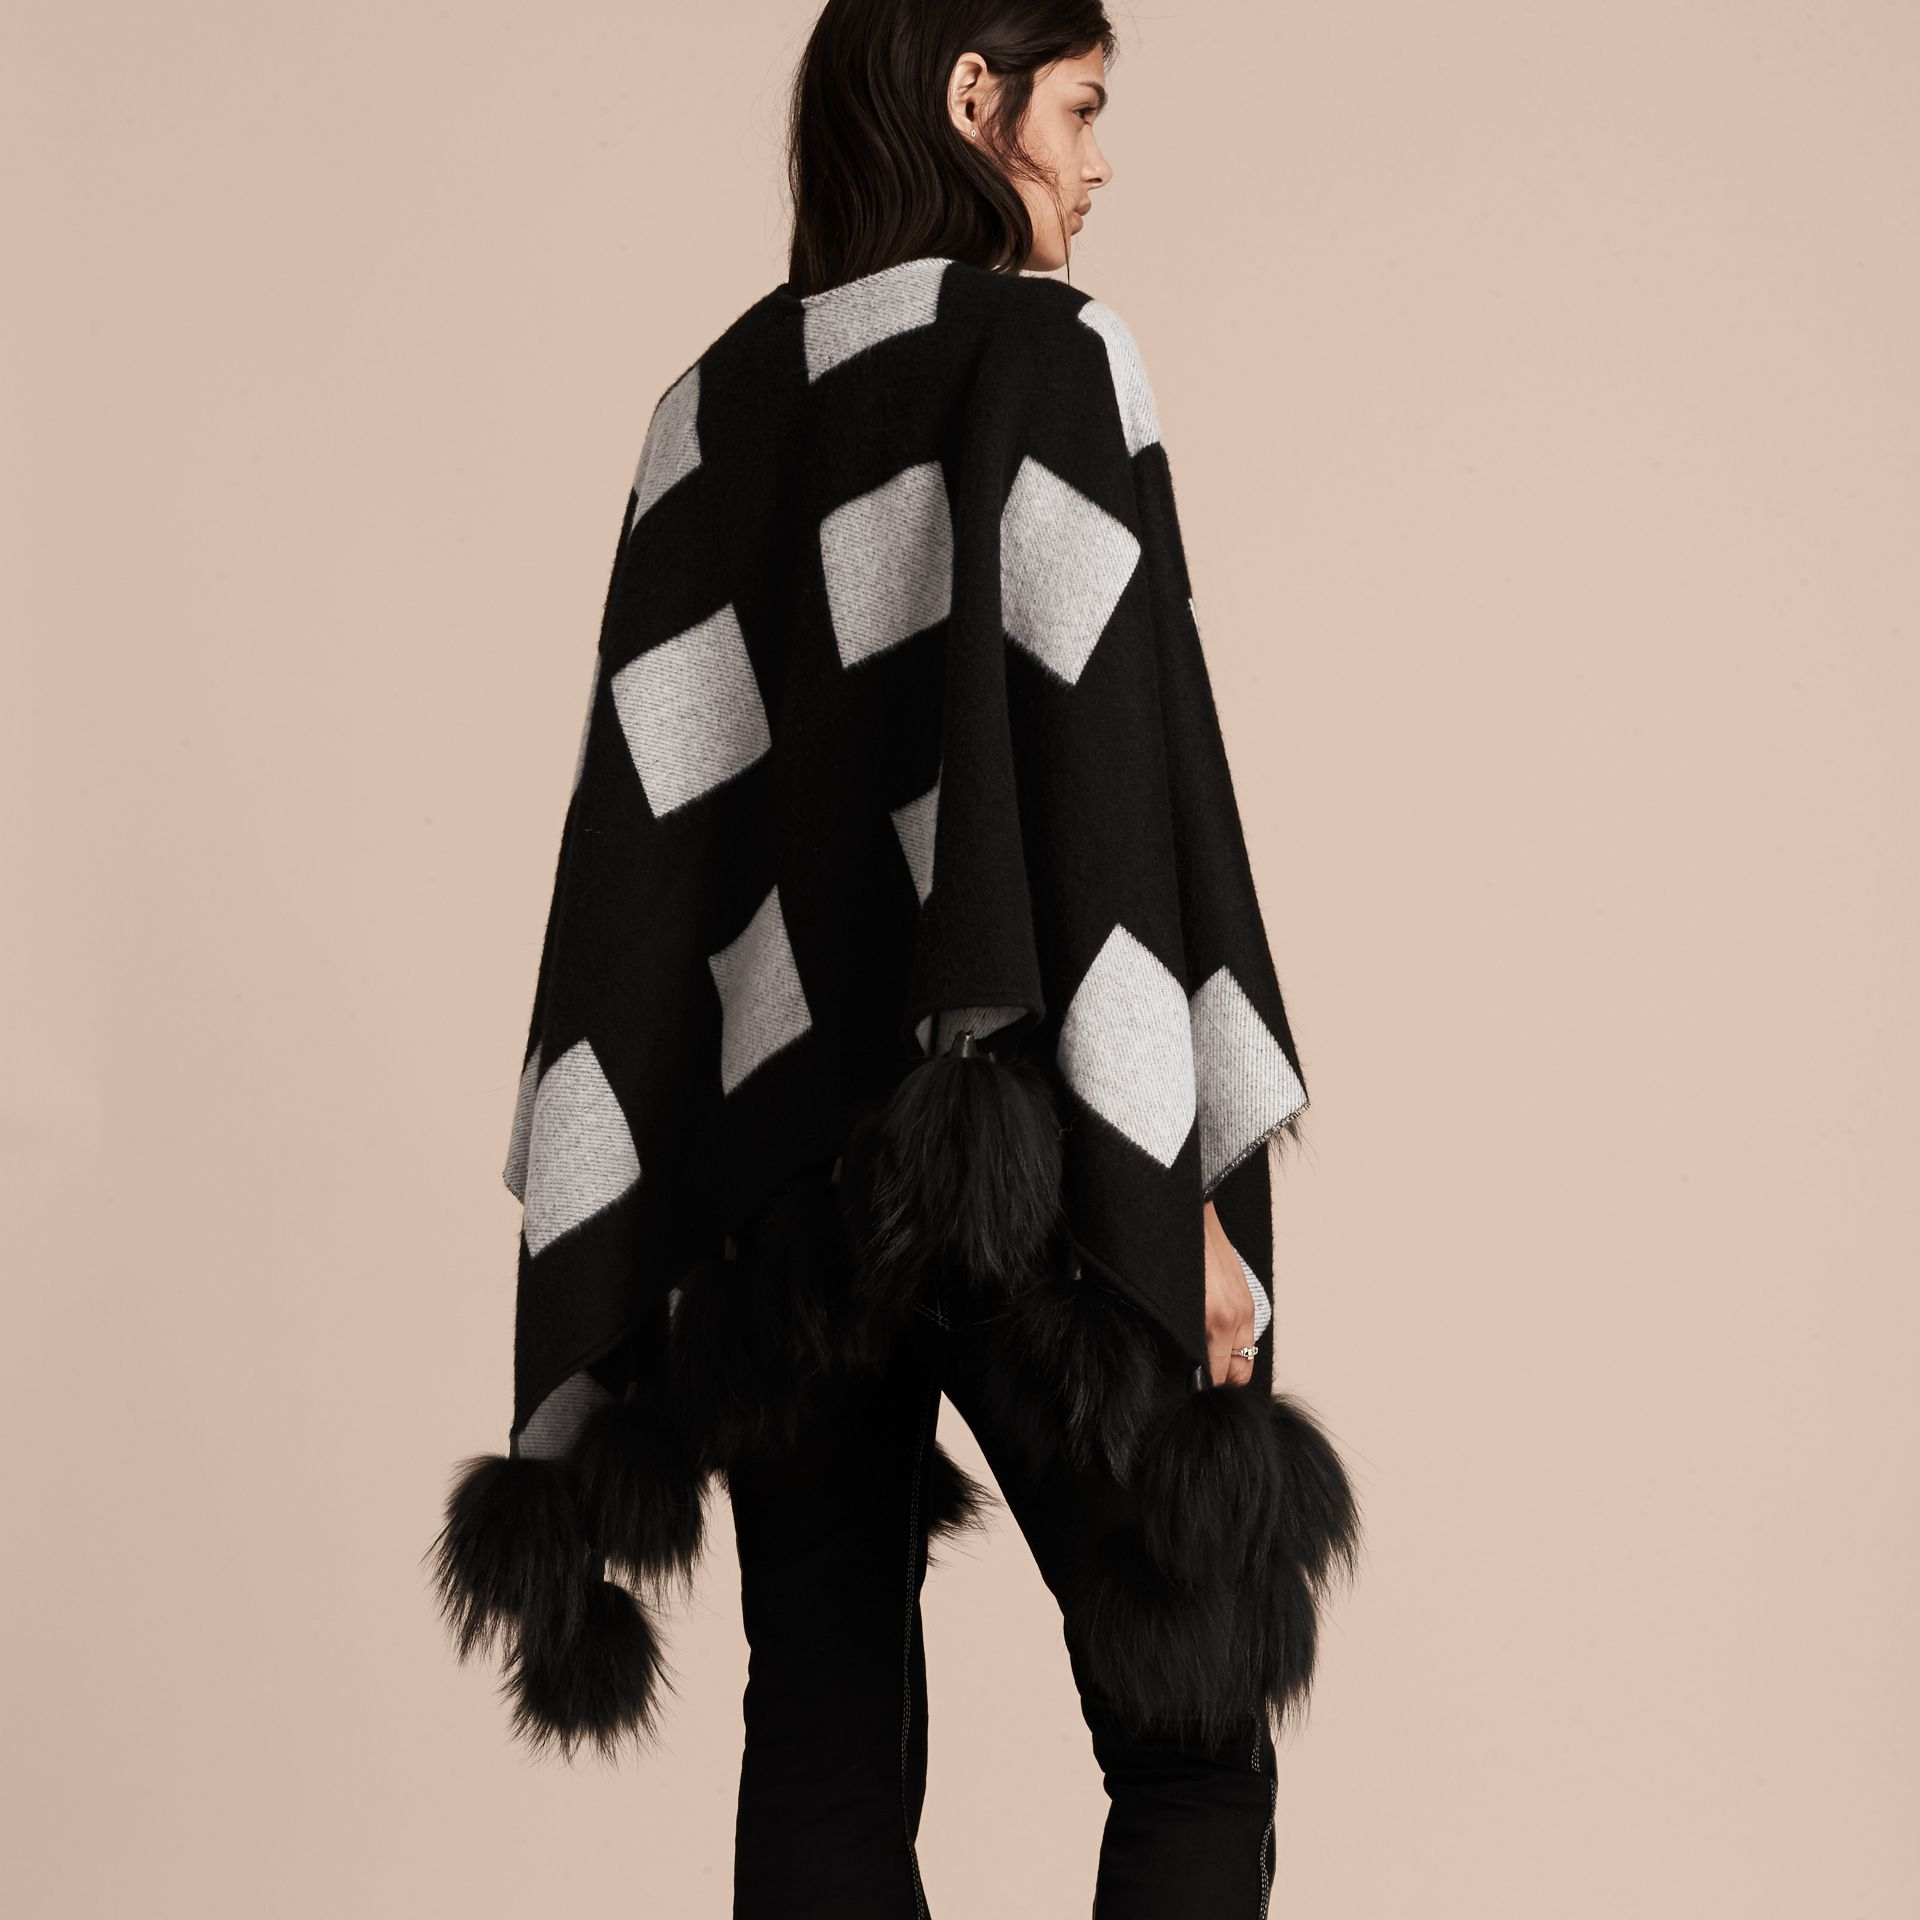 Black/white Check Jacquard Cashmere Poncho with Raccoon Pom-poms - gallery image 3